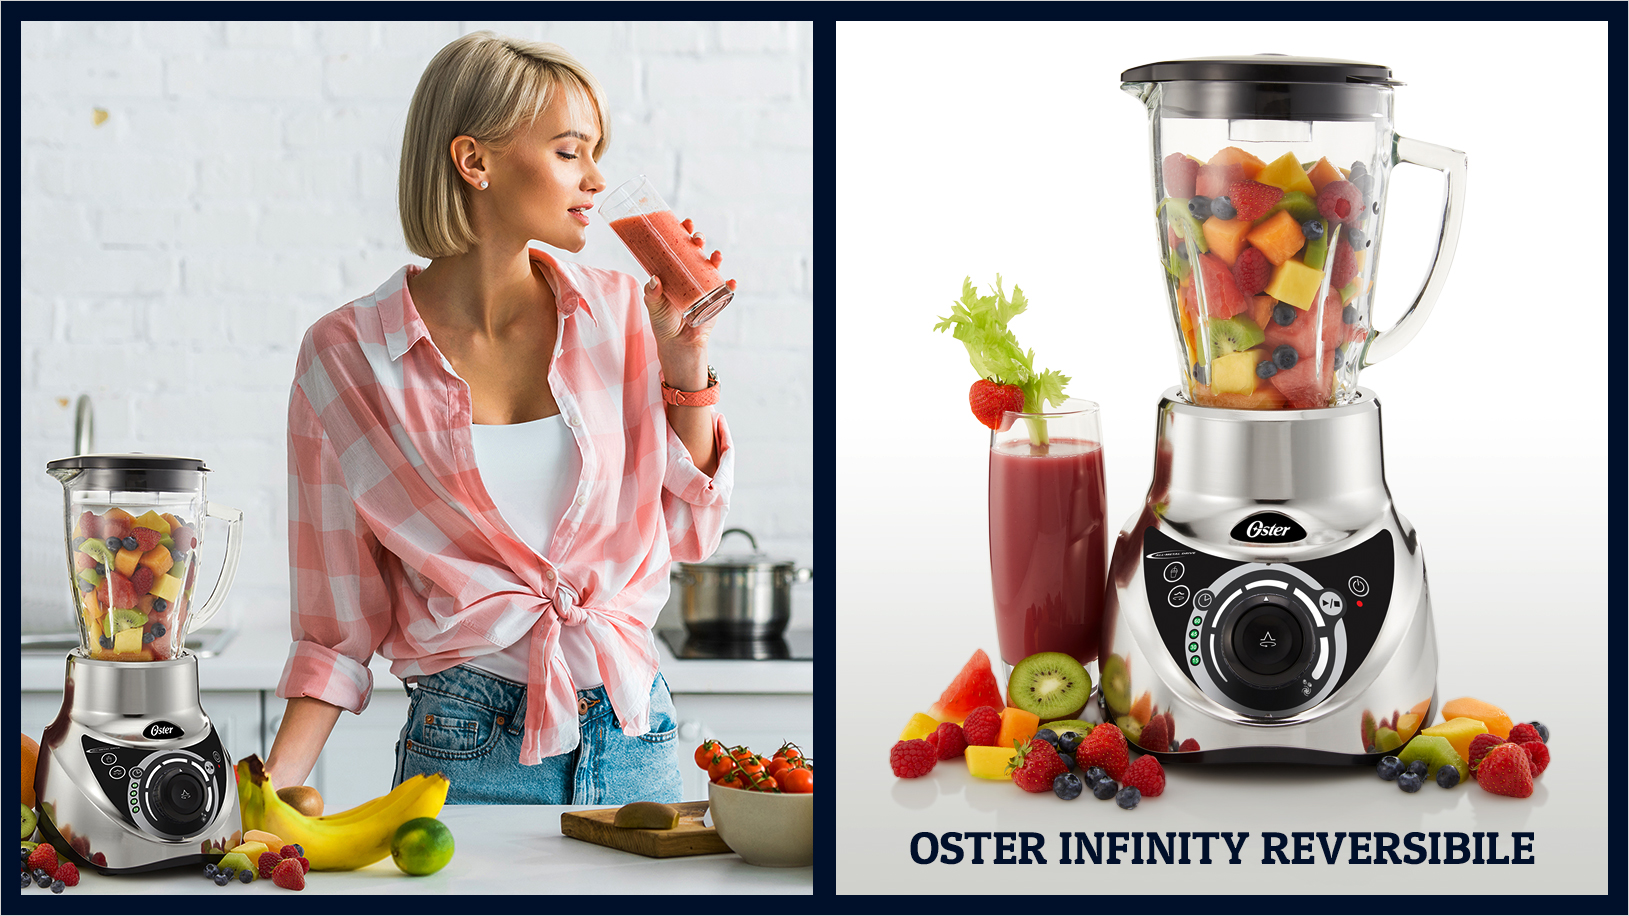 Oster Infinity